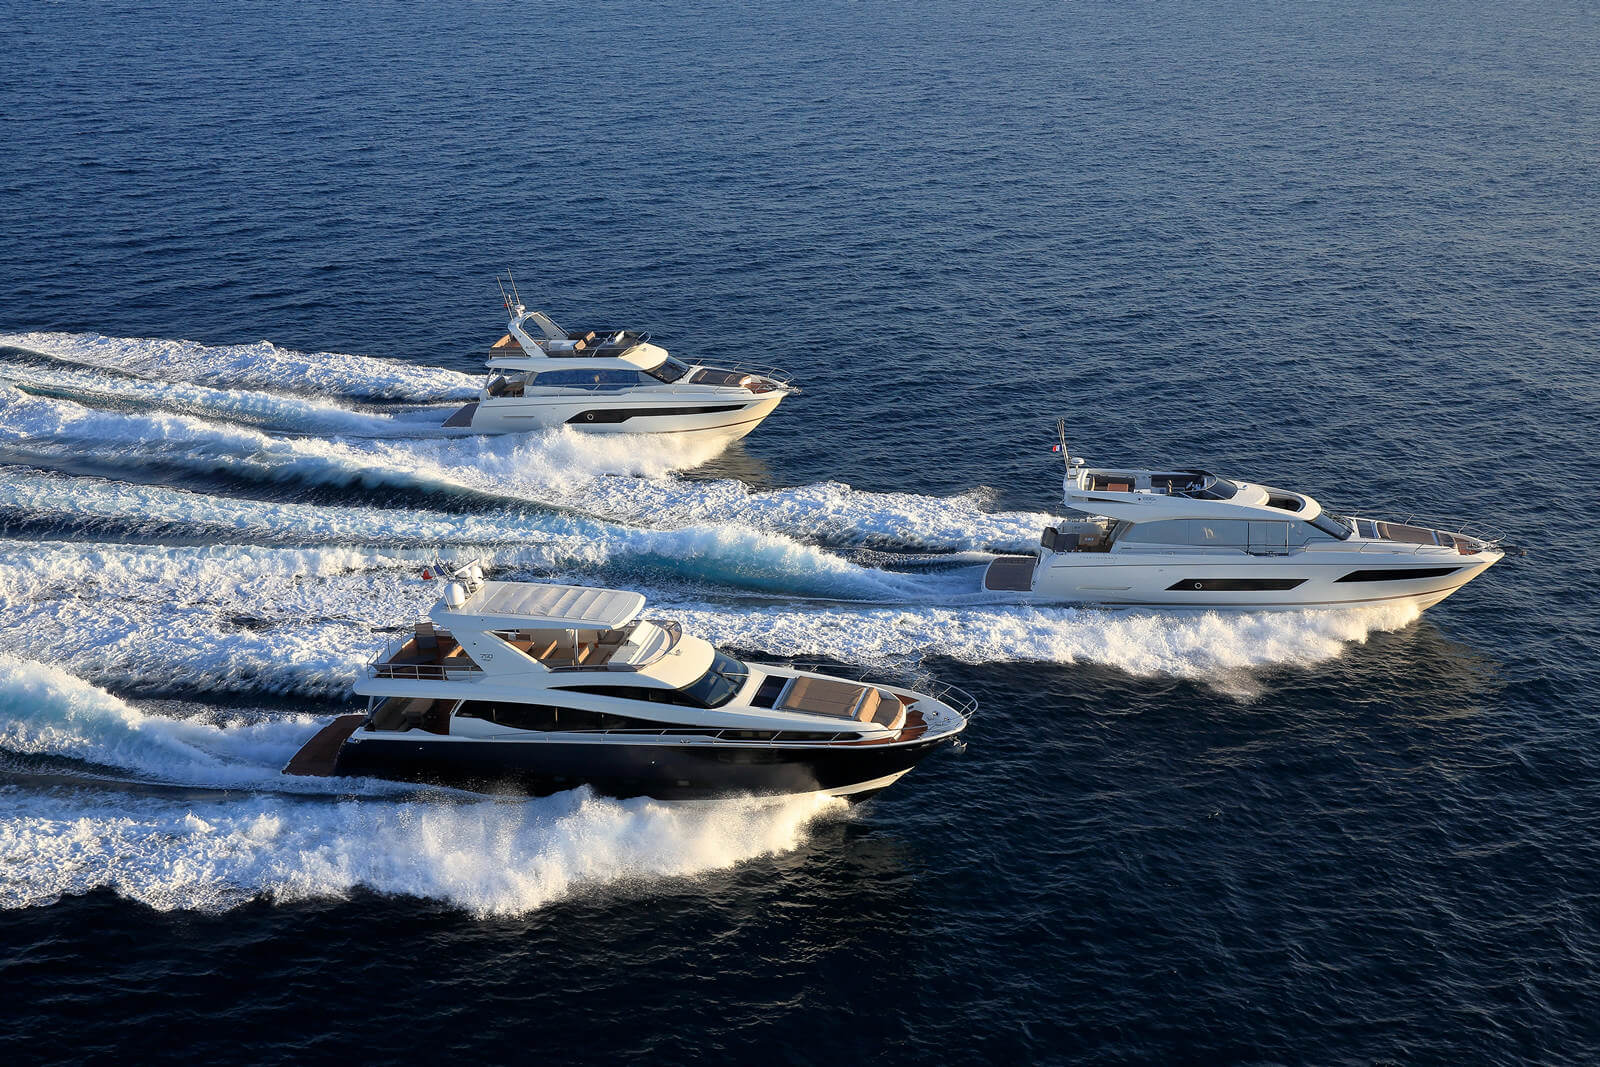 Used yachts & boats Archives - Stream Yachts